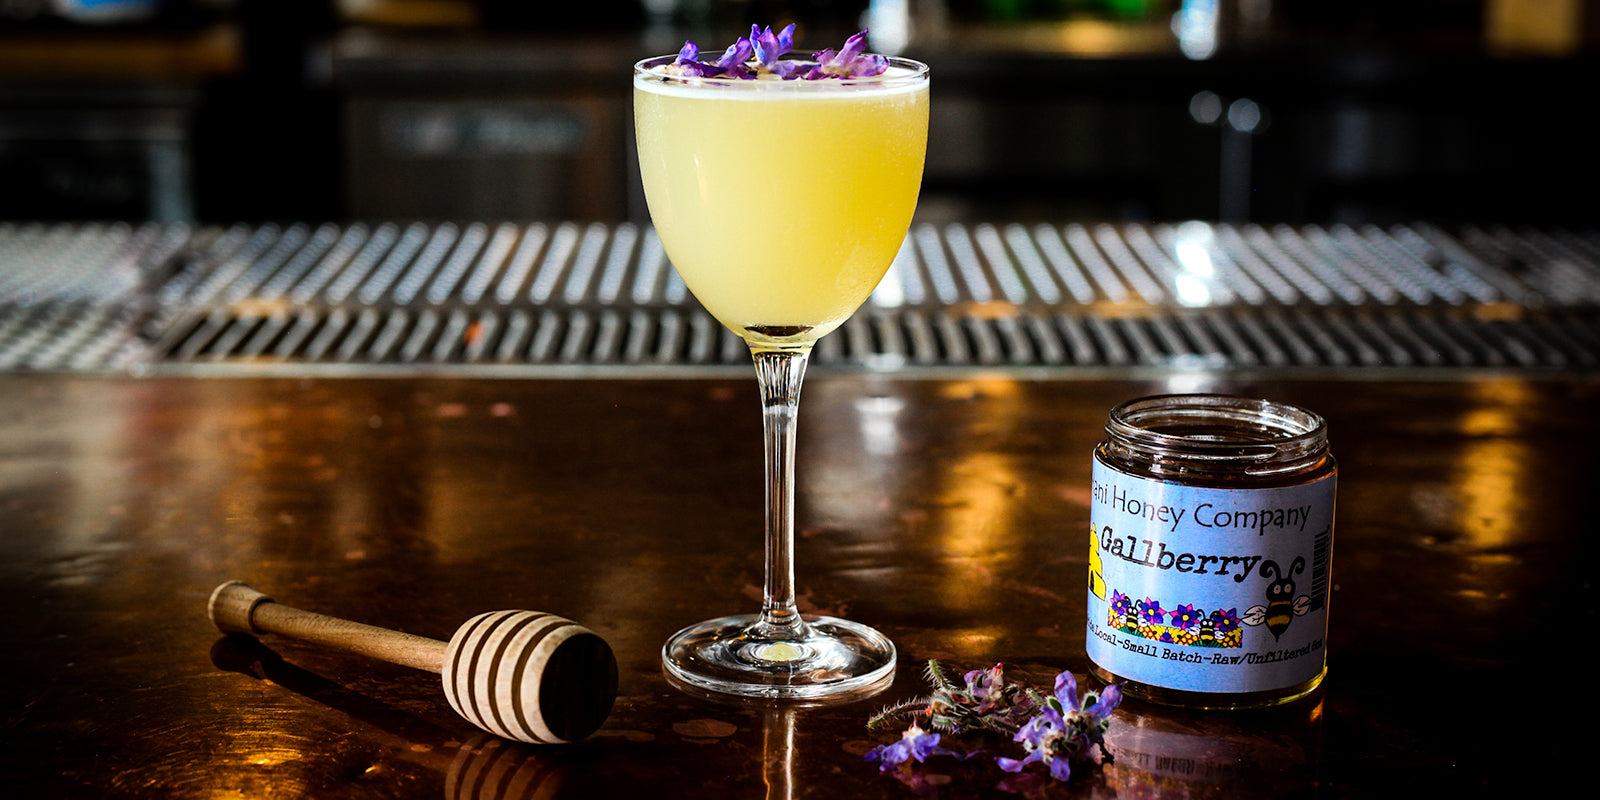 The Gallberry Bees Knees Cocktail